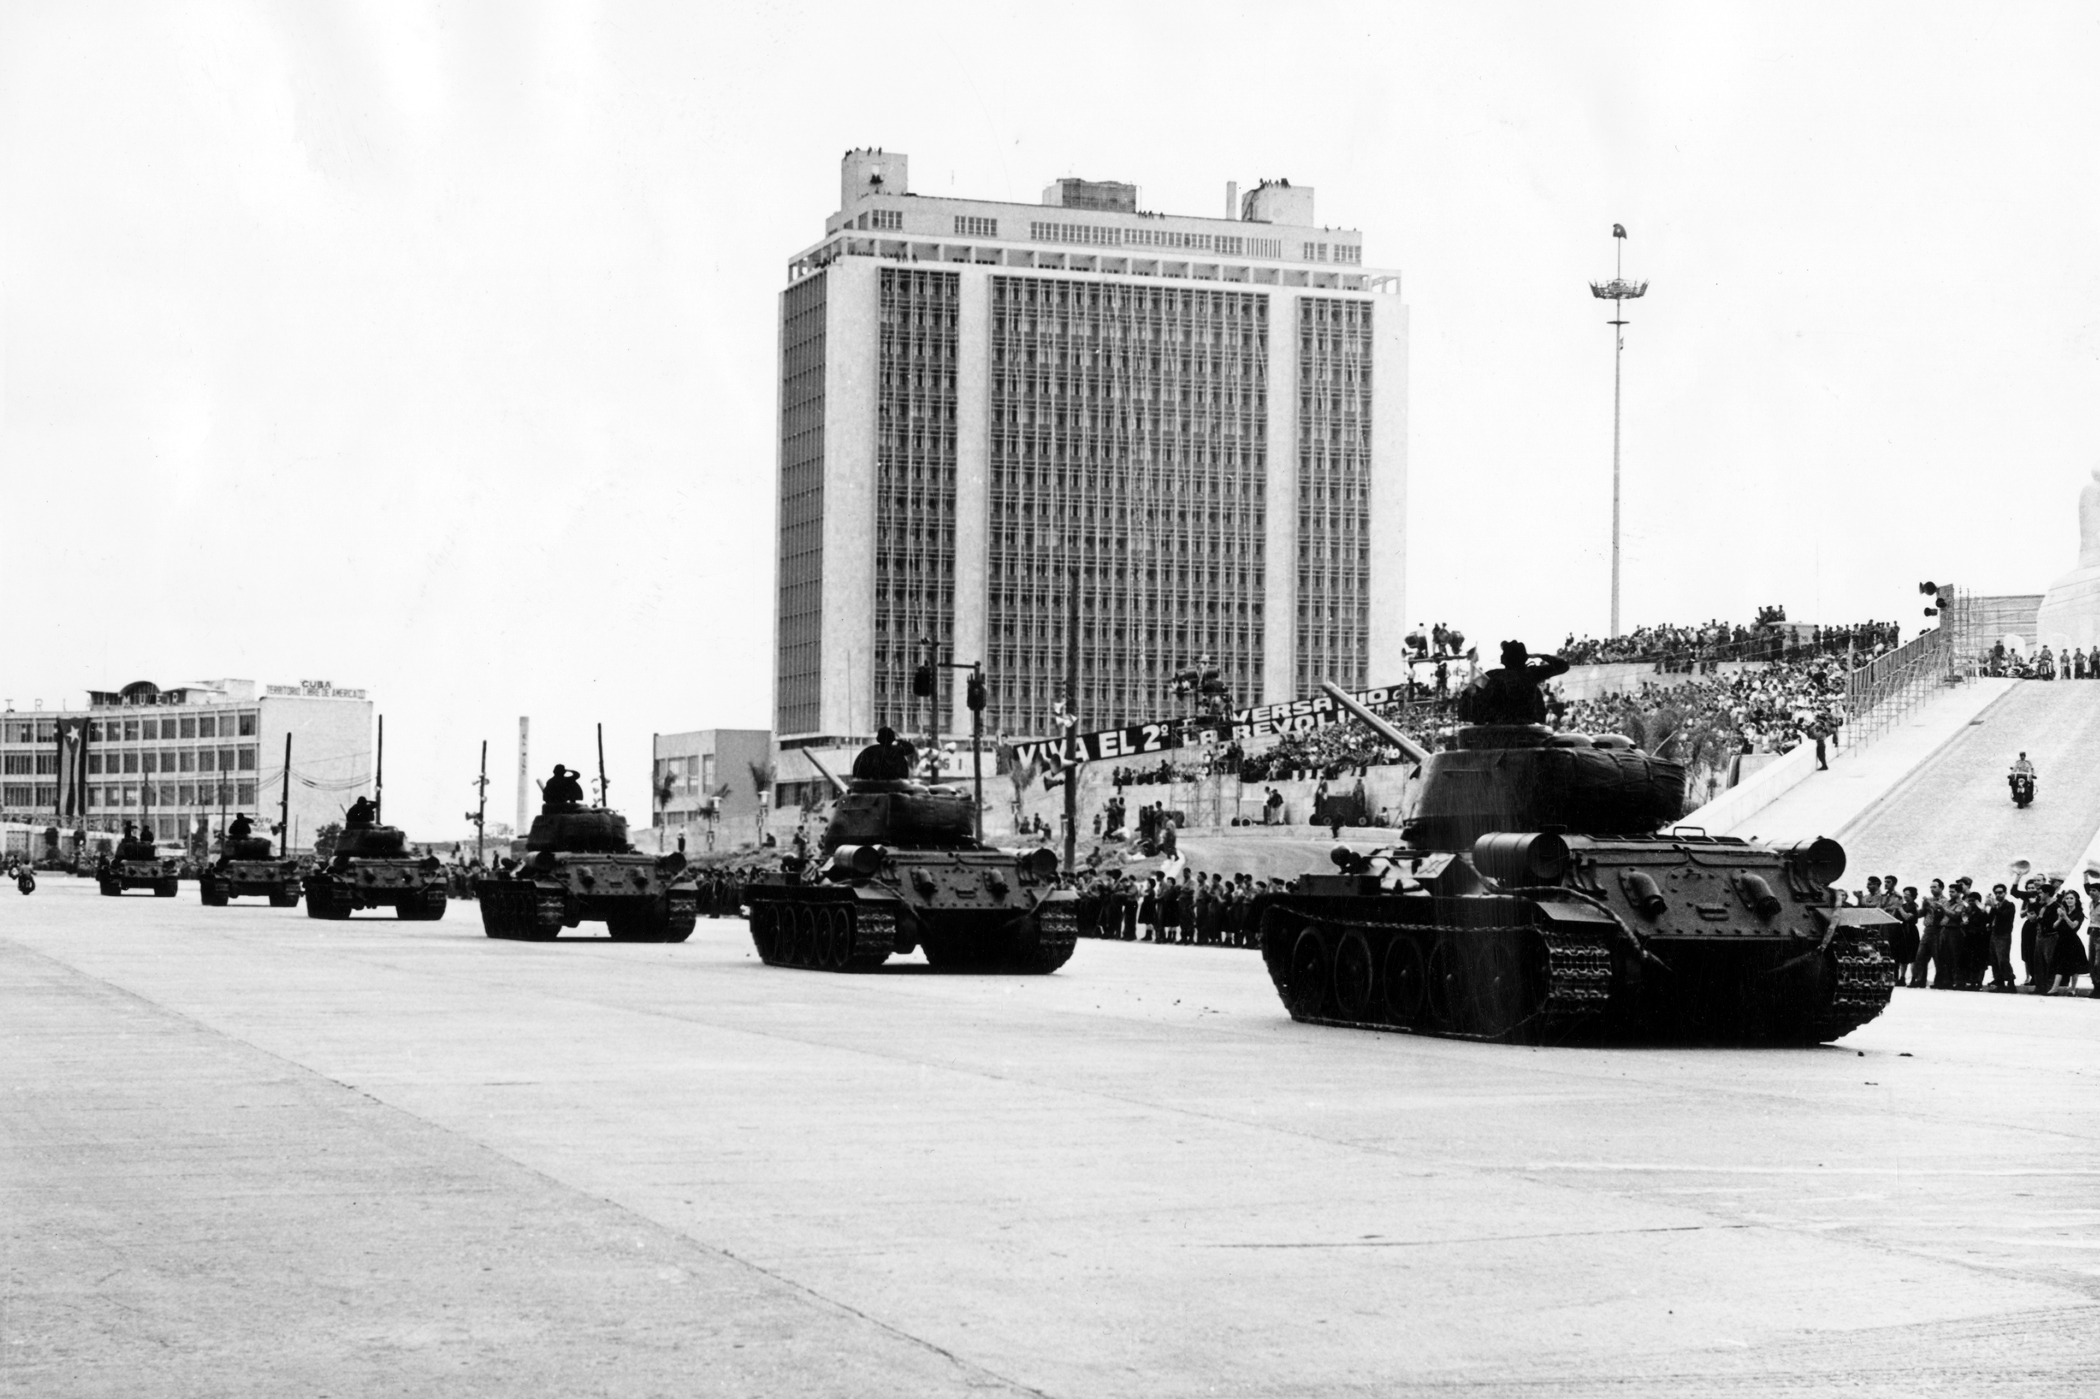 Tanks pass in a military parade on the second anniversary of the Cuban Revolution at Plaza Marti in Havana in  January 1961.